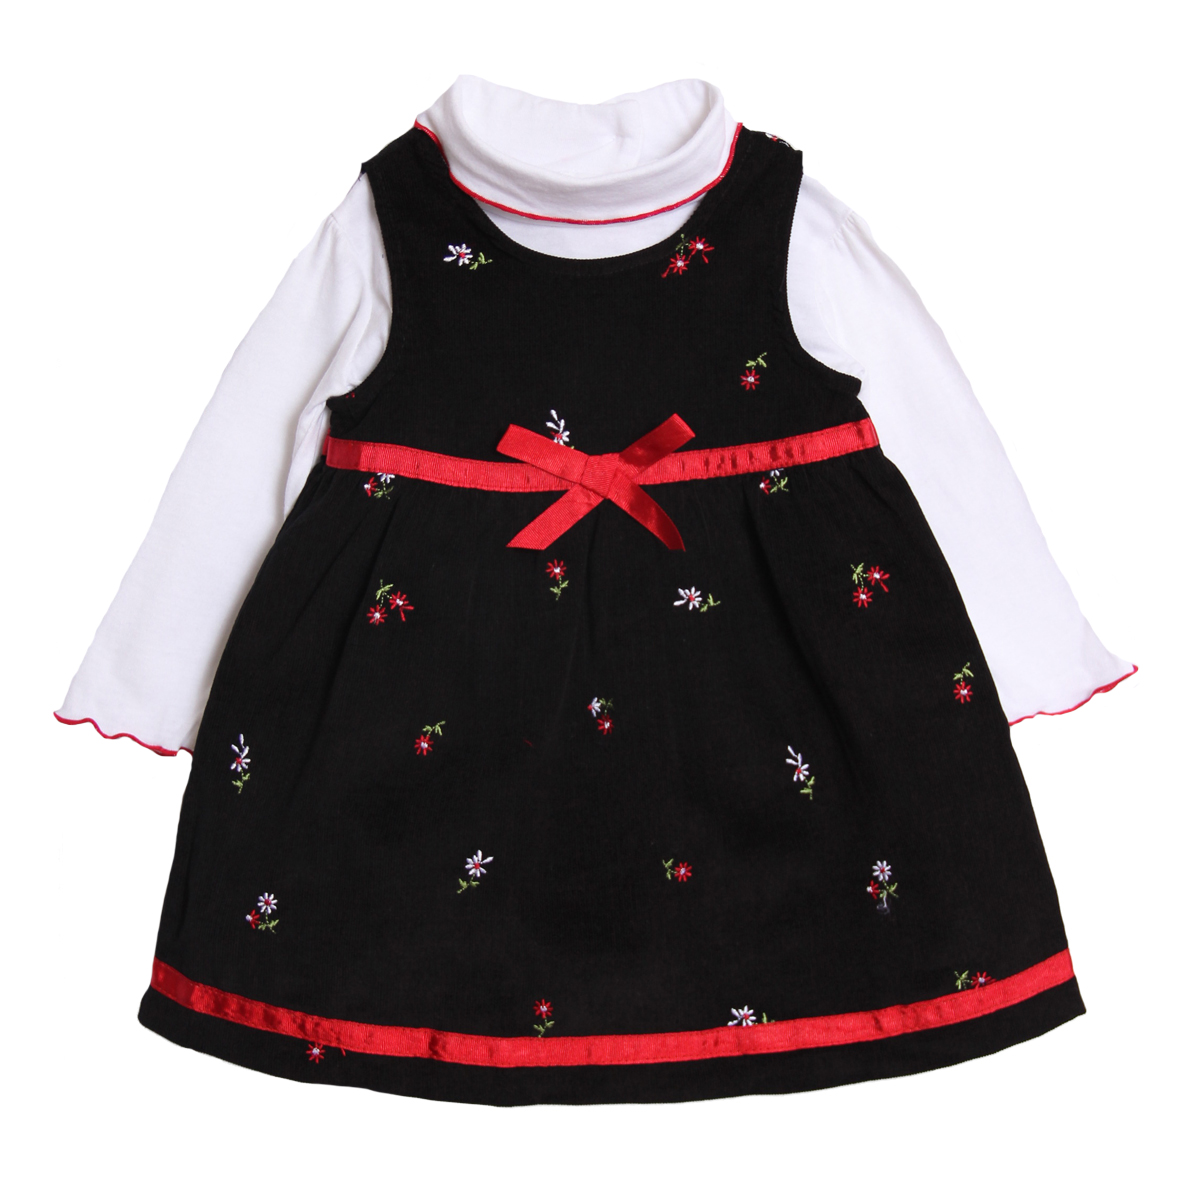 B.T. Kids Newborn Baby Girls 2 Piece Black Red Corduroy Holiday Jumper Turtleneck at Sears.com